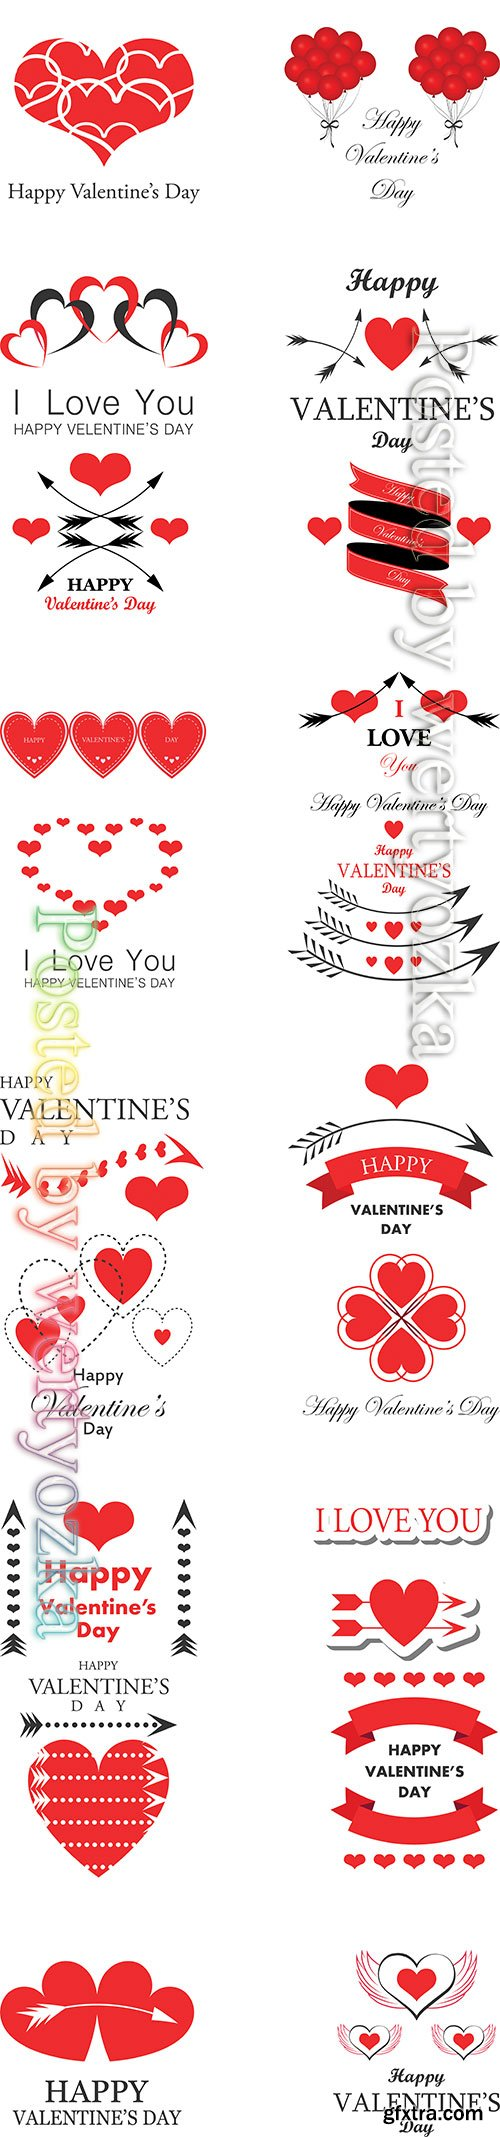 Wedding and Happy Valentine's Day logo